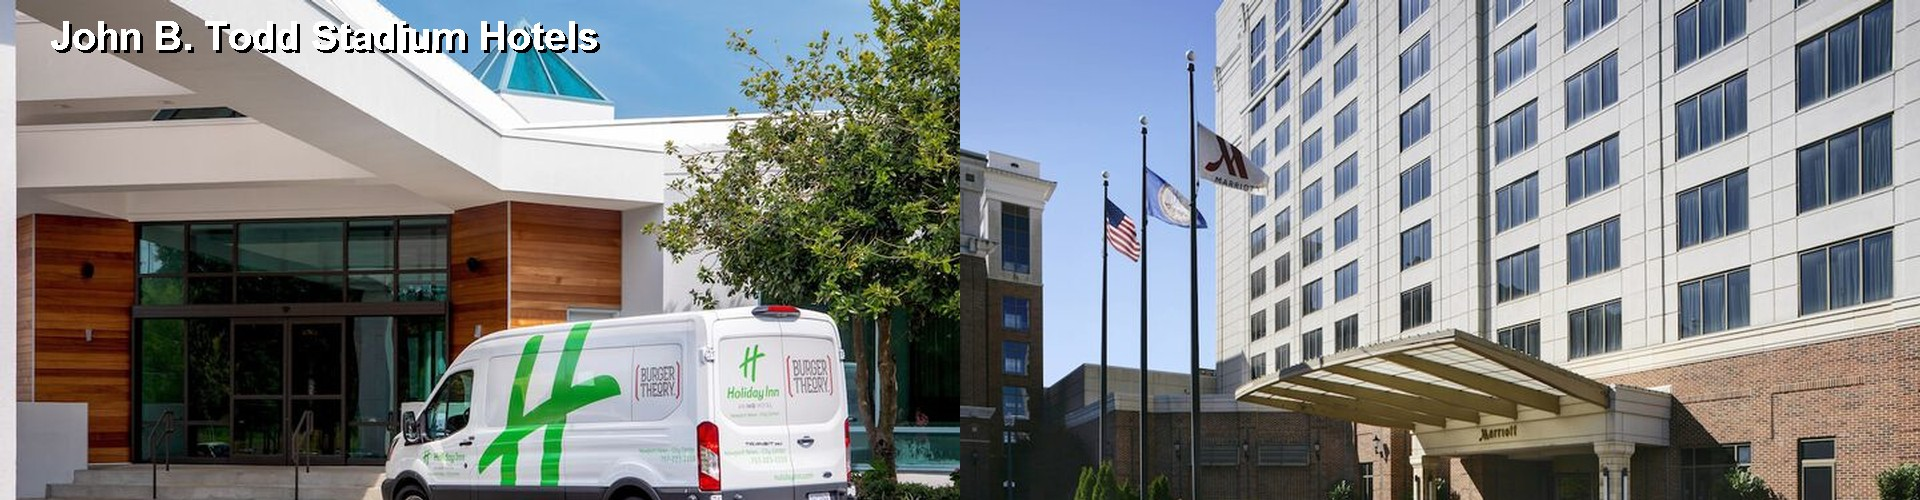 2 Best Hotels near John B. Todd Stadium